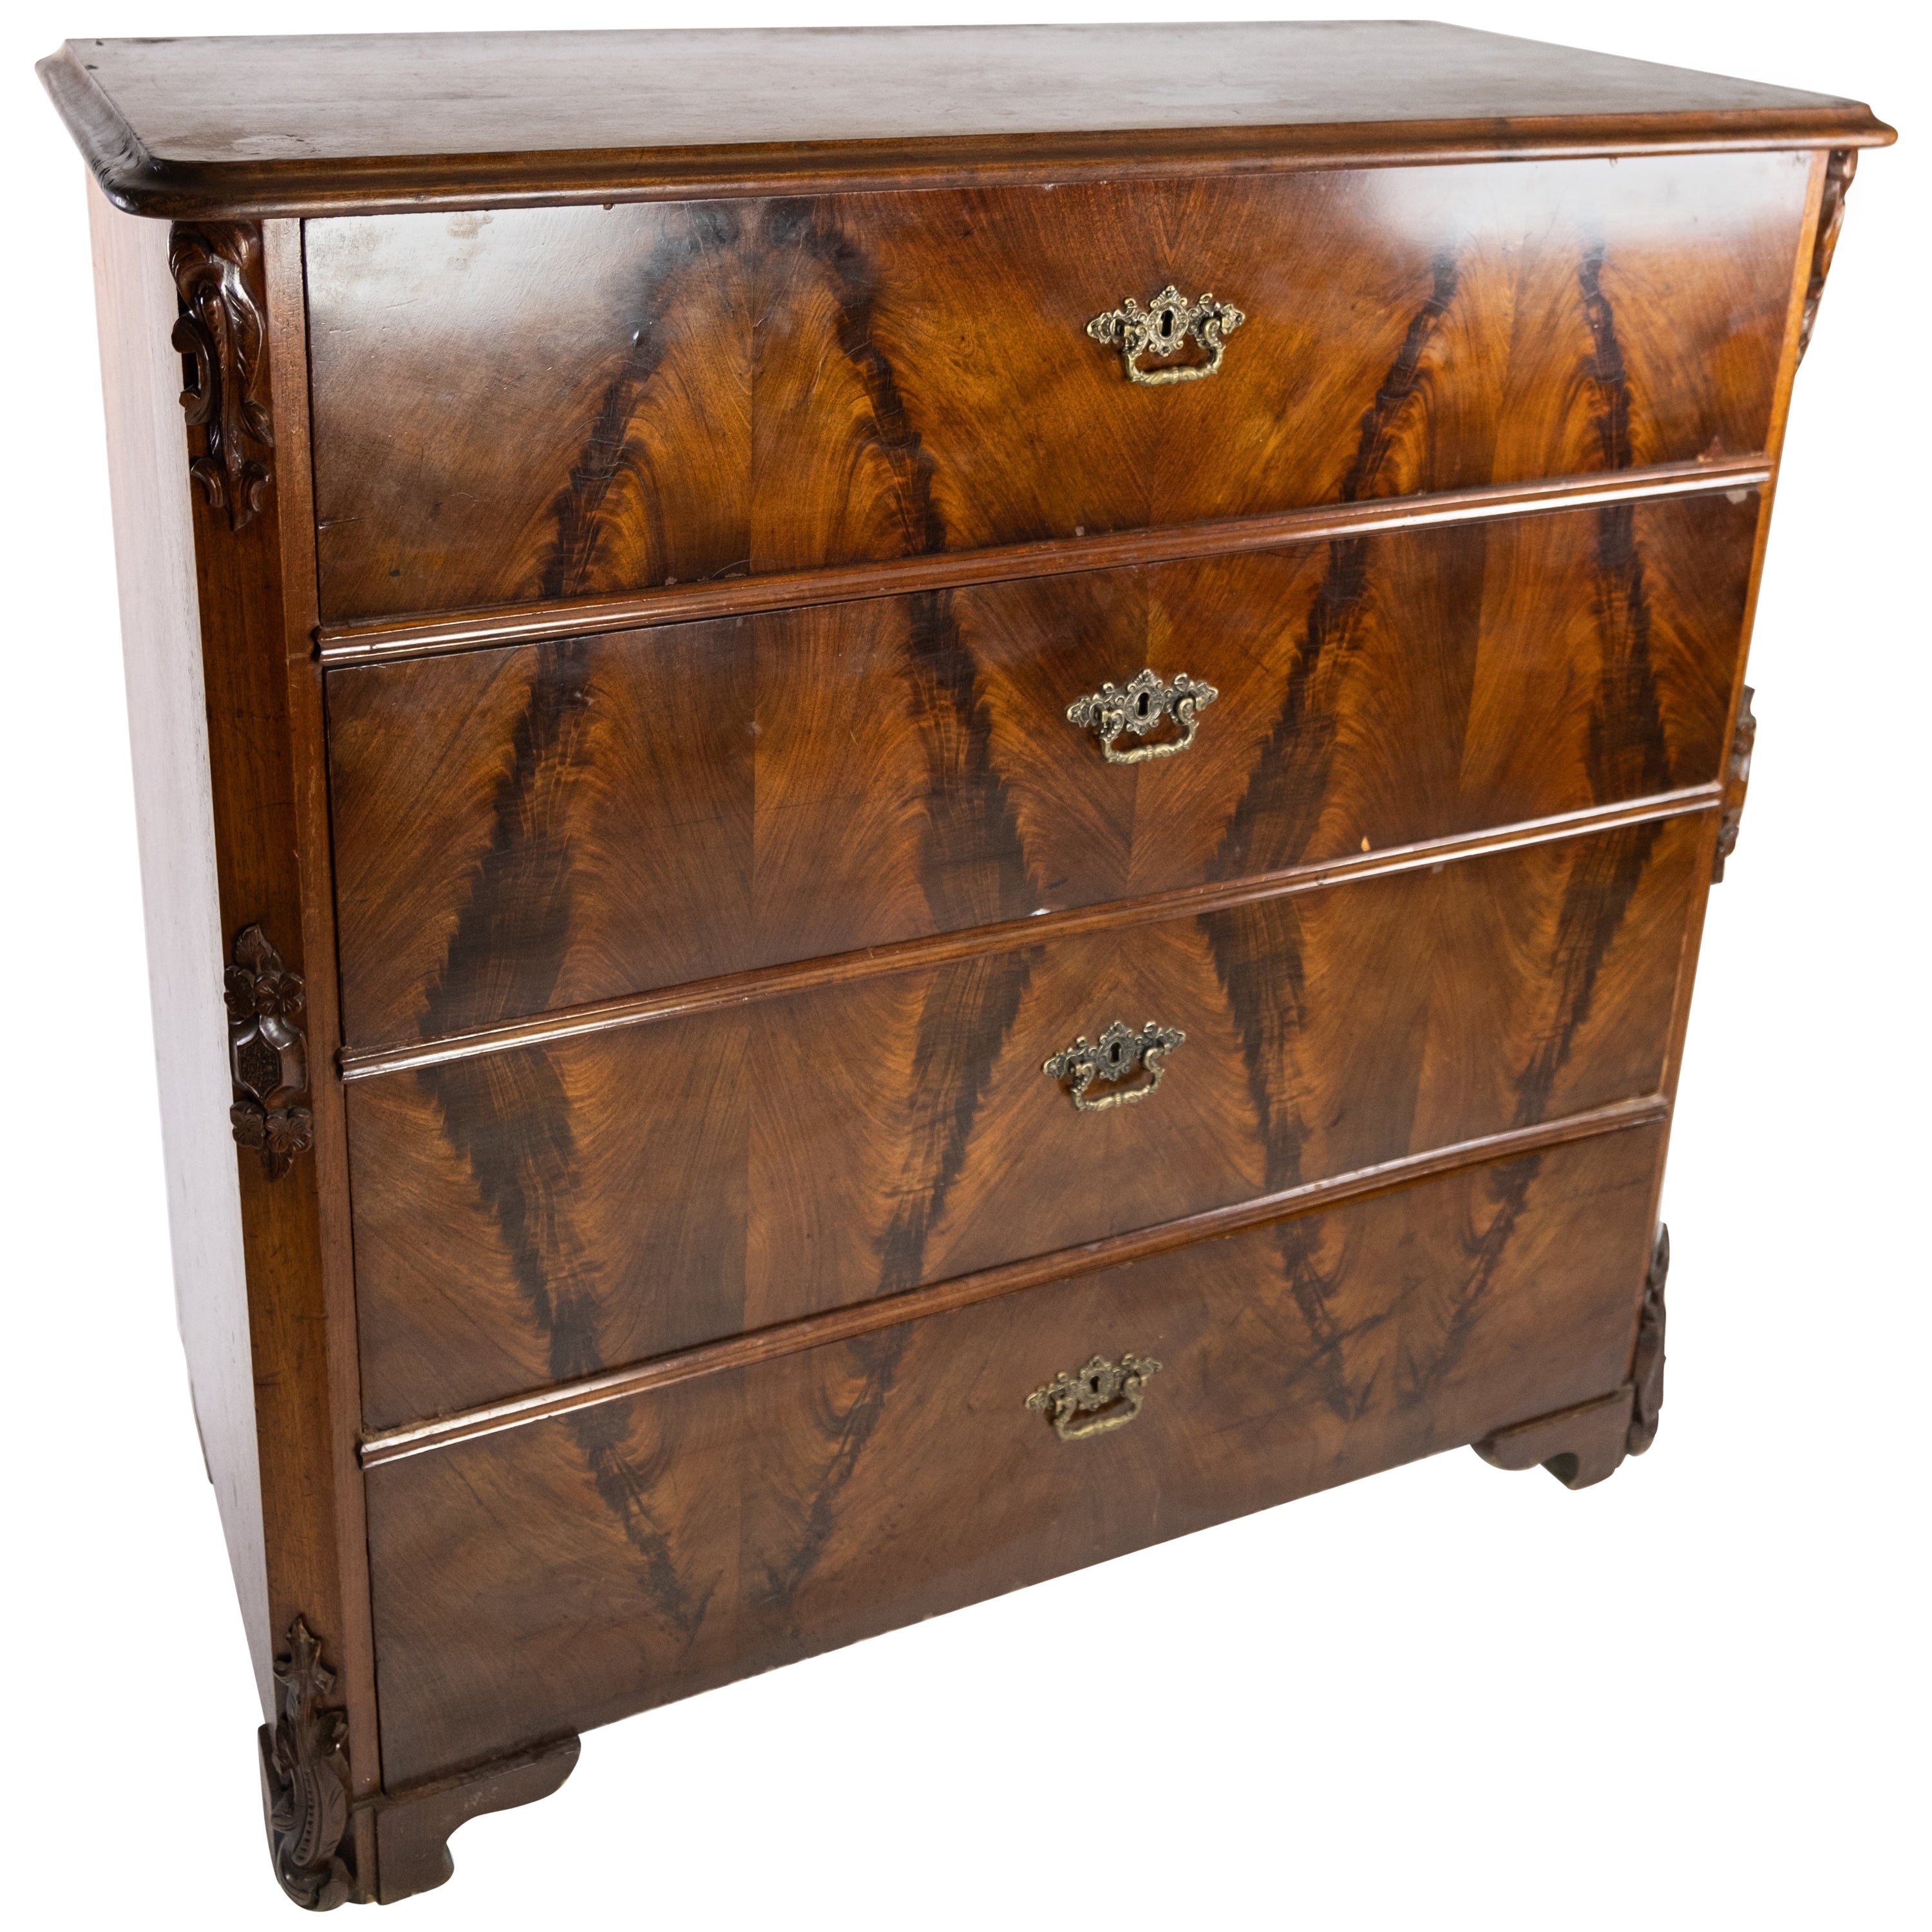 Chest of Drawers of Mahogany, in Great Antique Condition from the 1860s